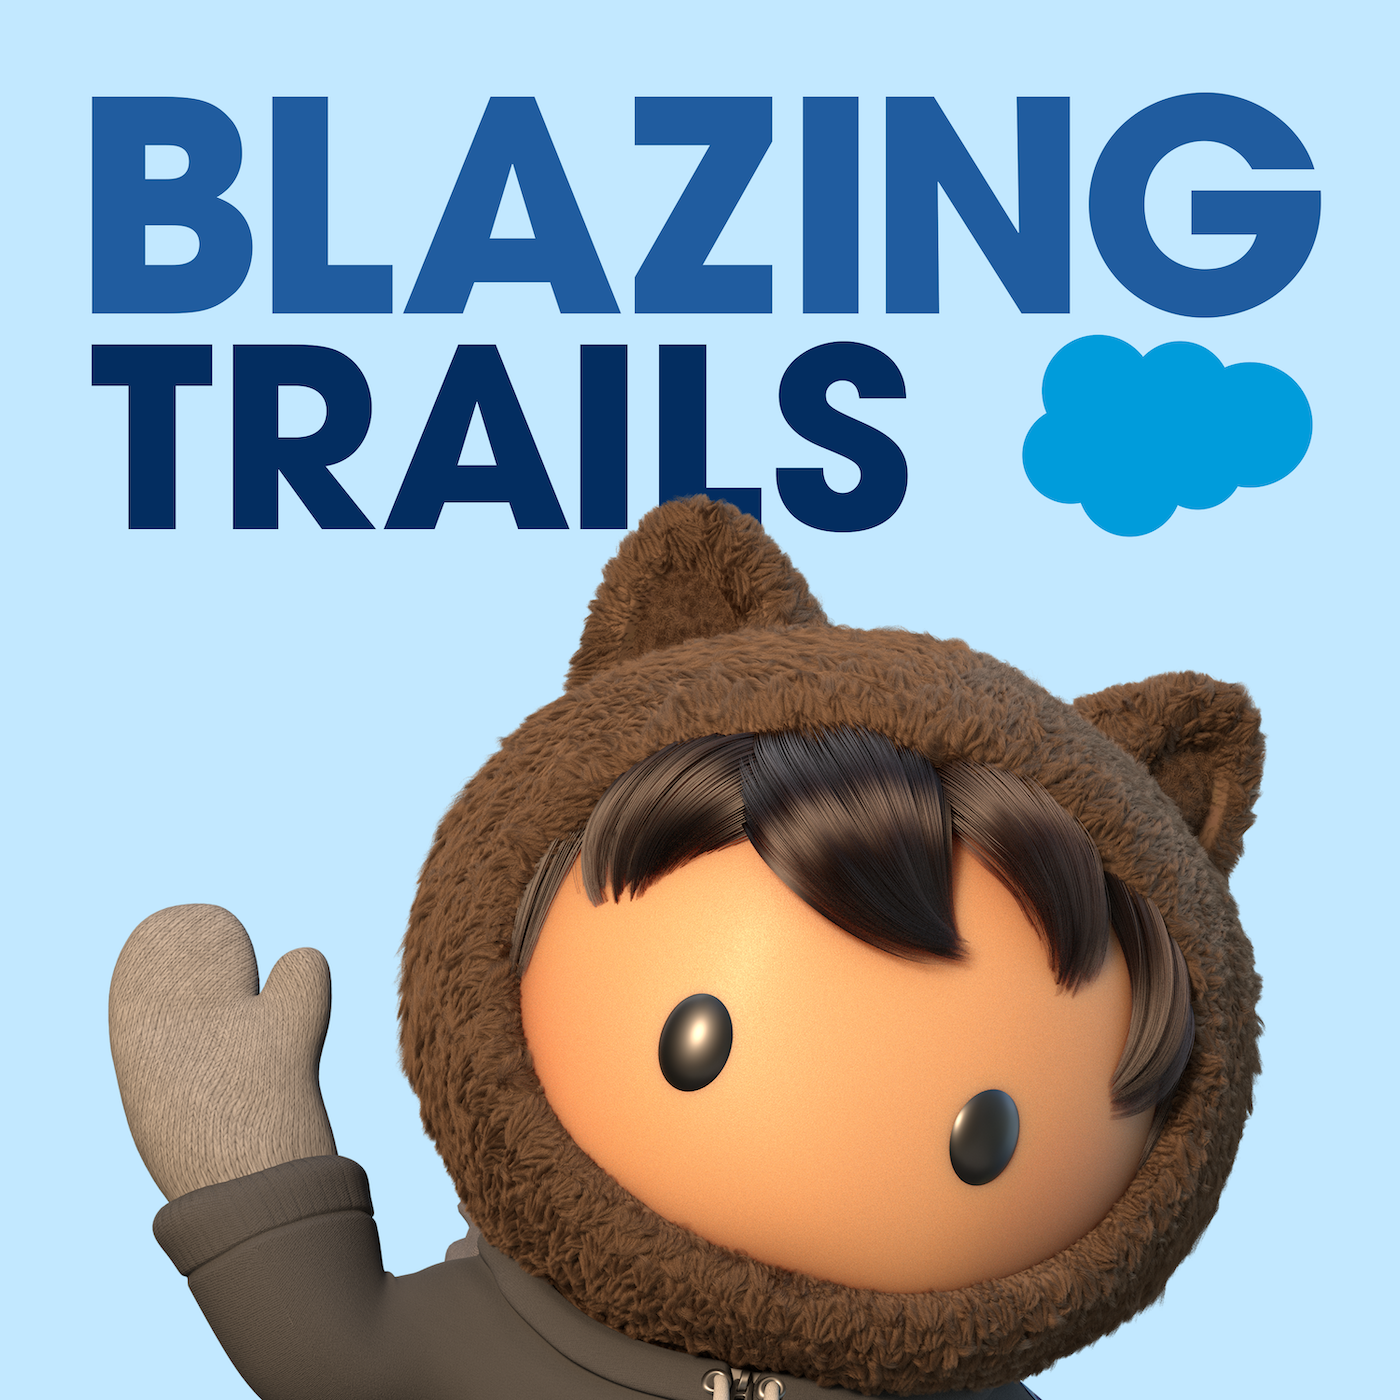 Welcome Back to Blazing Trails!